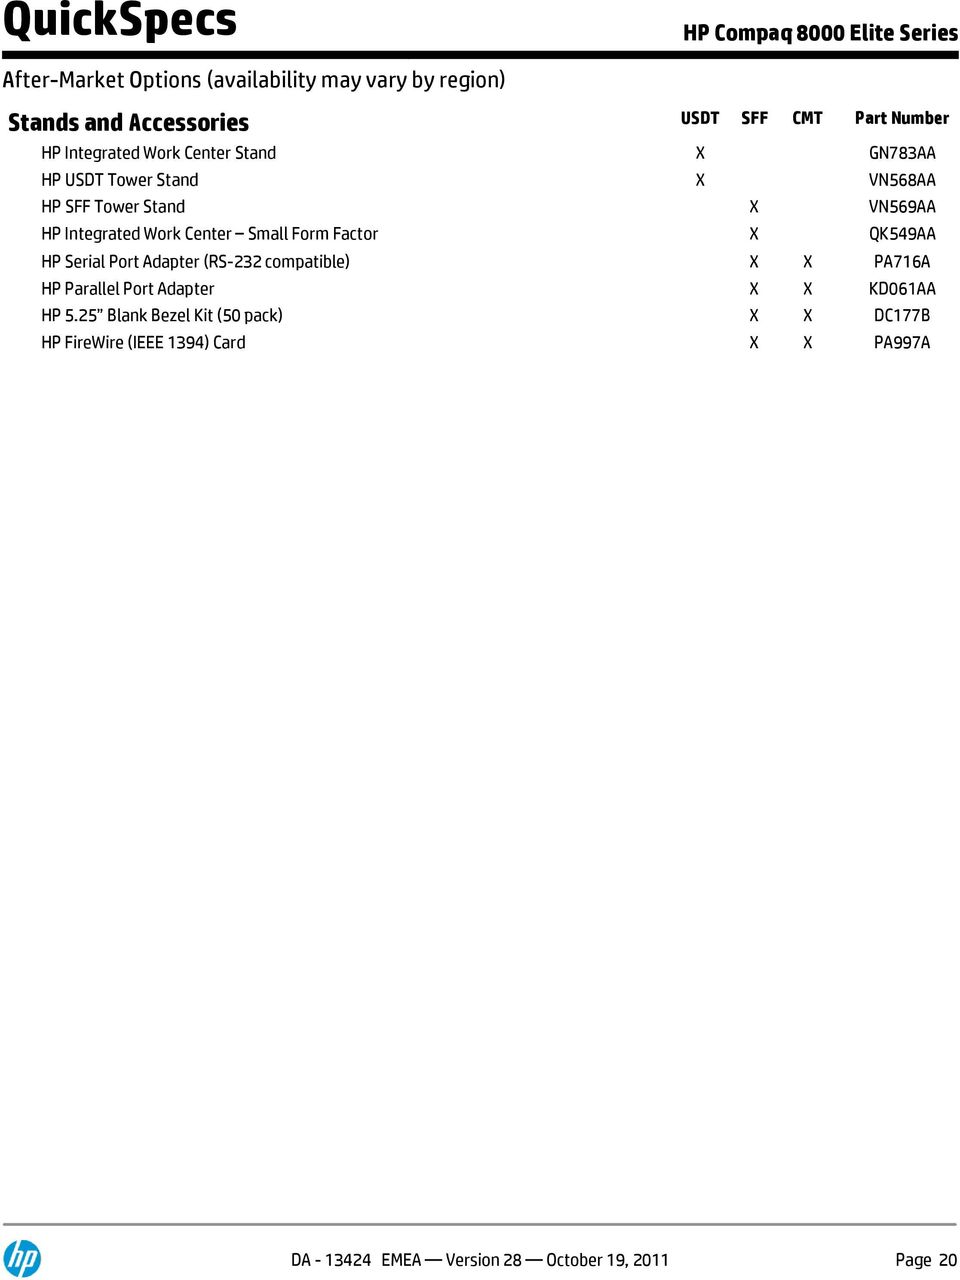 Hp 8000 Sff Specifications